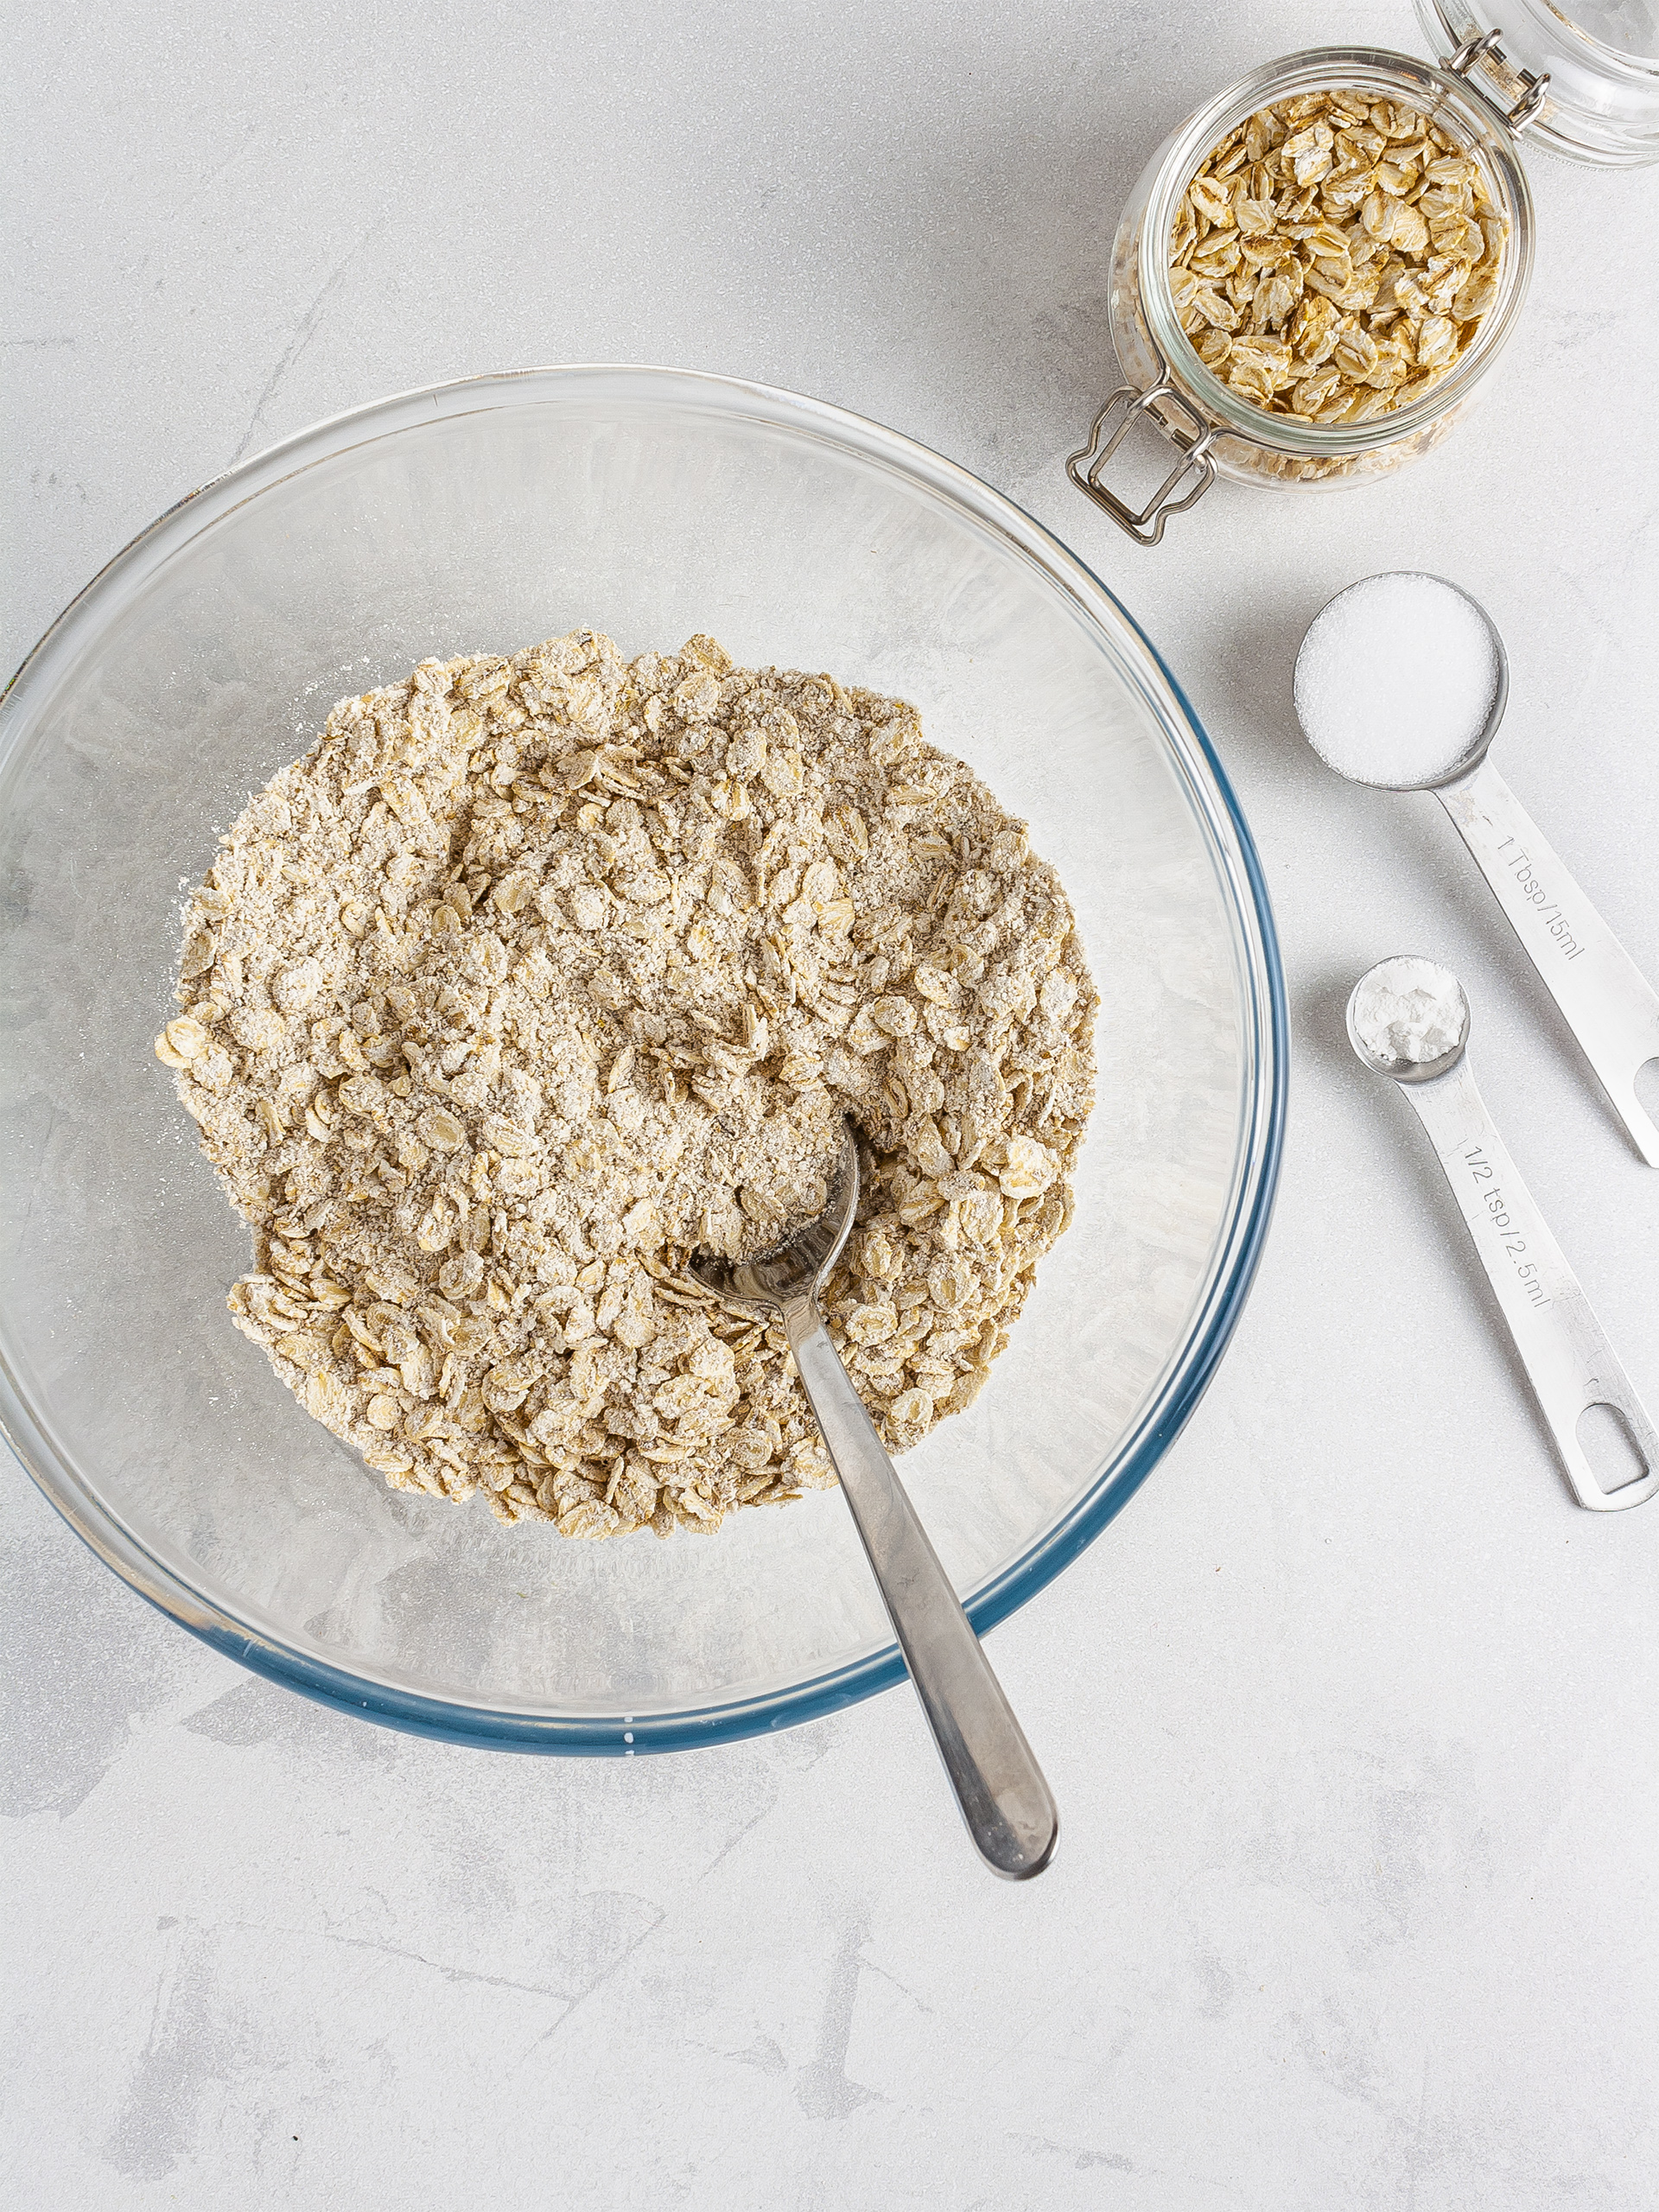 Oat flour, oat flakes, erythritol, and baking powder in a bowl